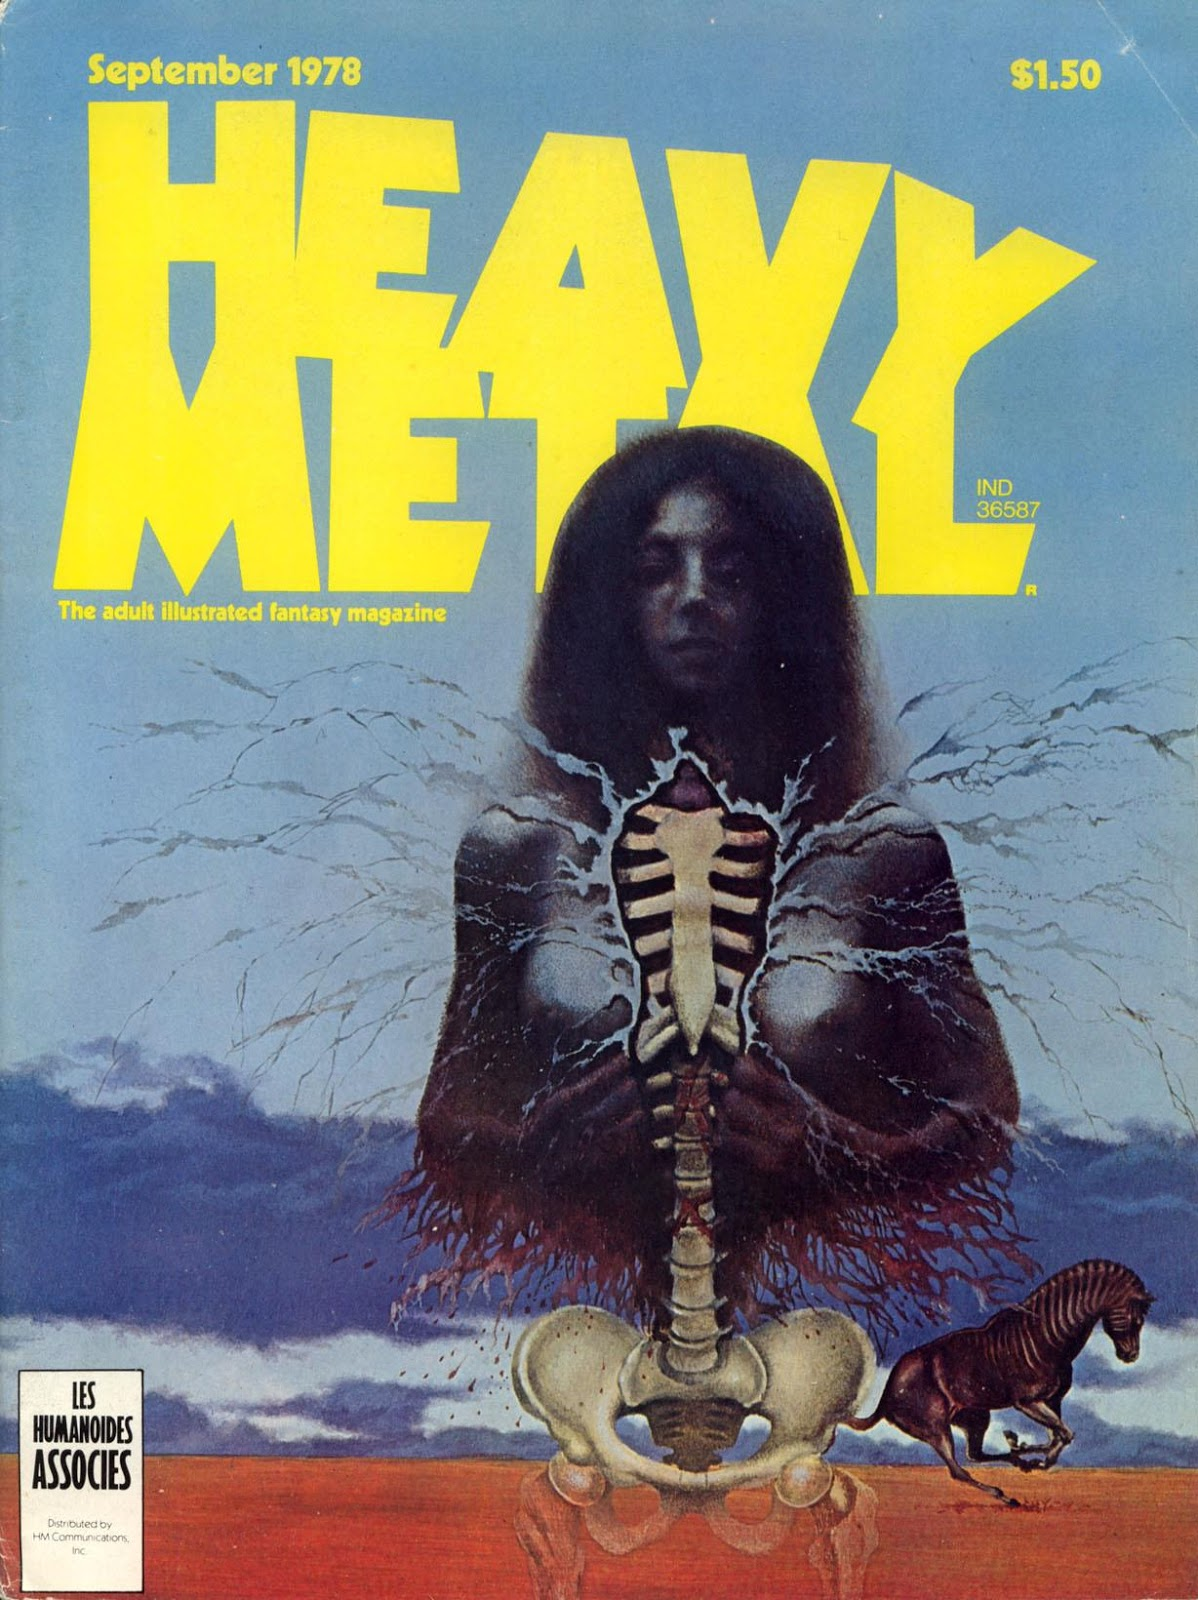 Images: A Fantastic Collection Of Stunning Sci-Fi And Fantasy Based Heavy Metal Comic Book Covers From The Late 1970's